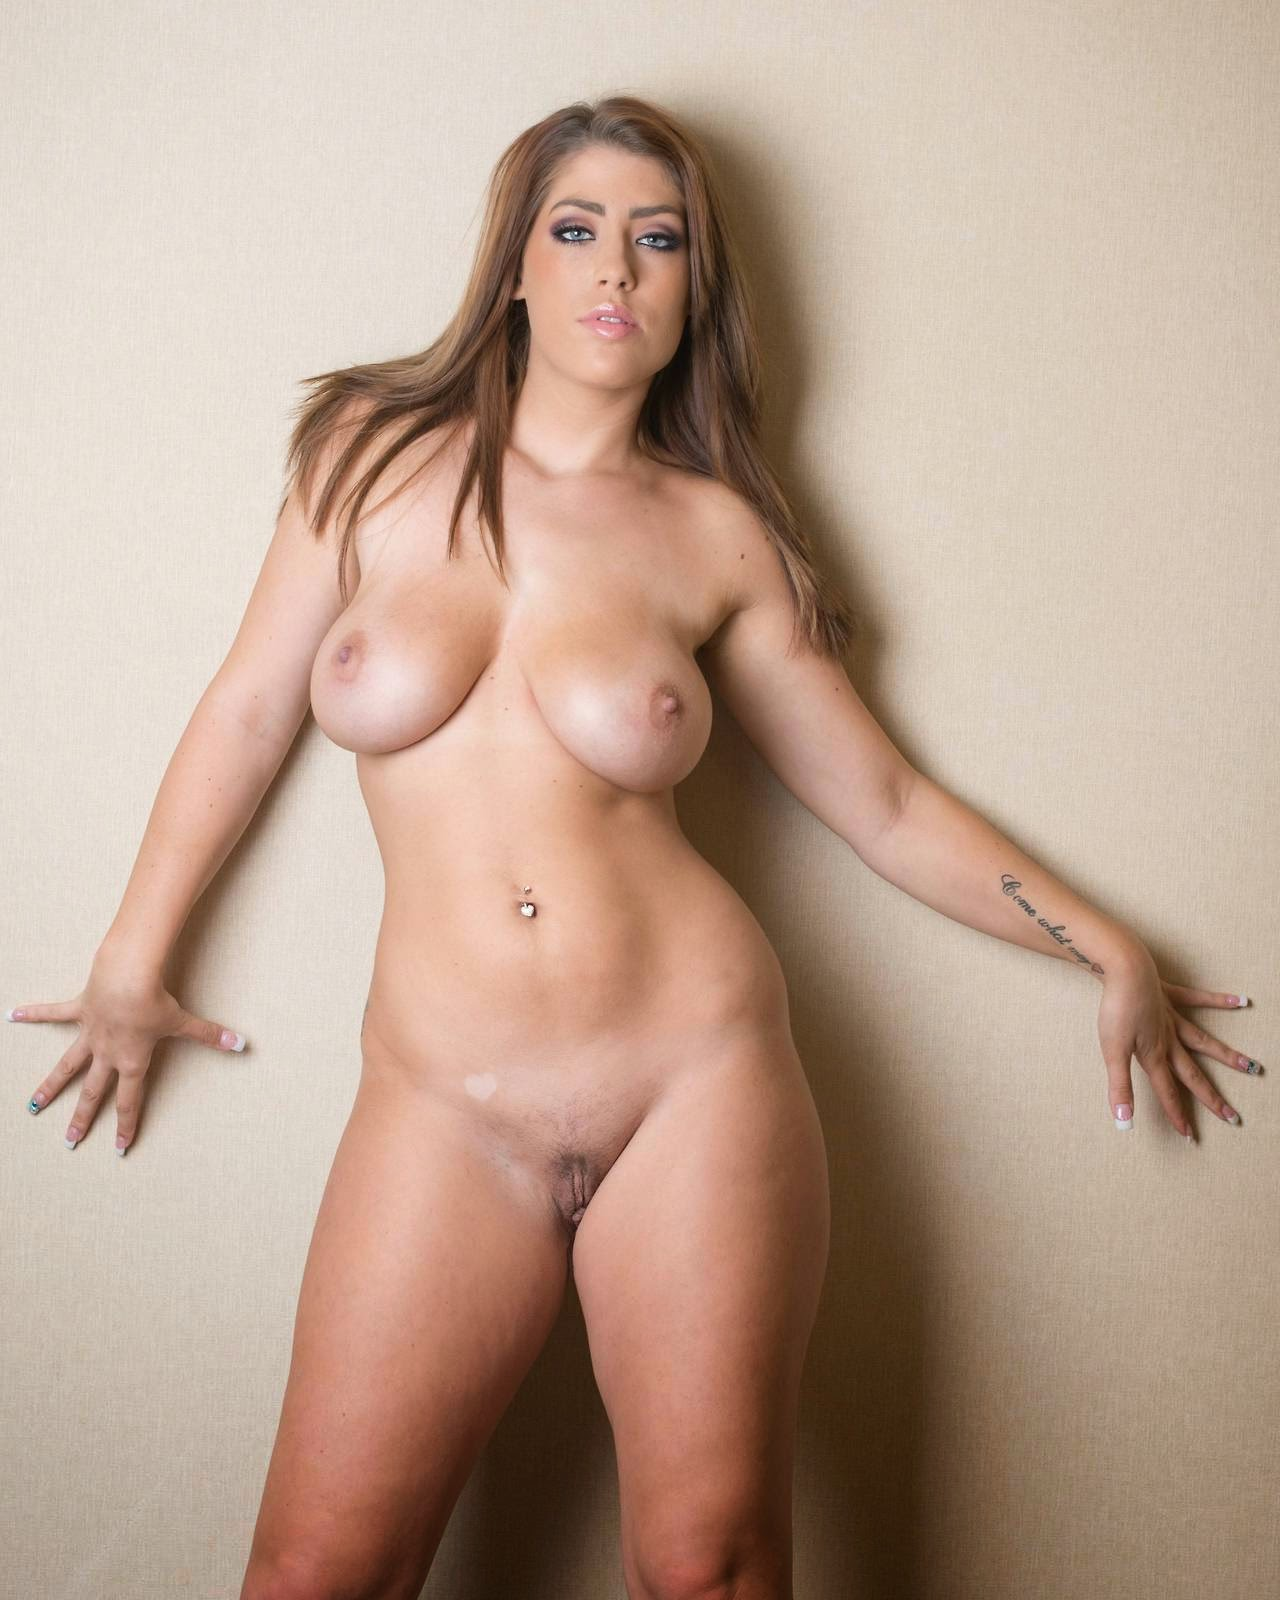 Emily jean nude pussy